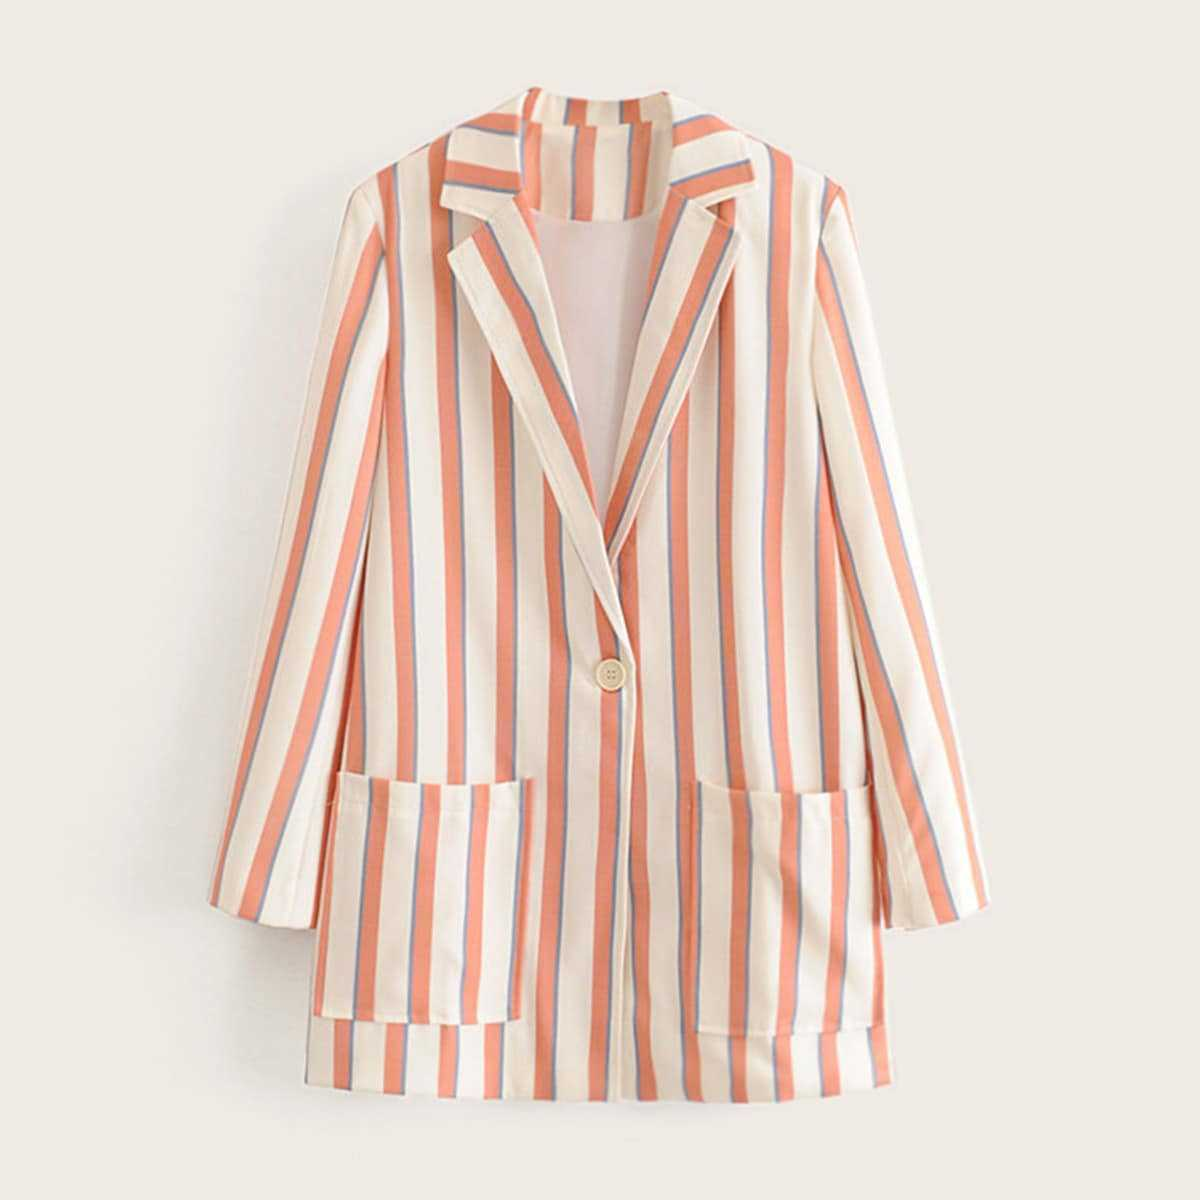 Dual Pocket Front Single Button Striped Blazer in Multicolor by ROMWE on GOOFASH